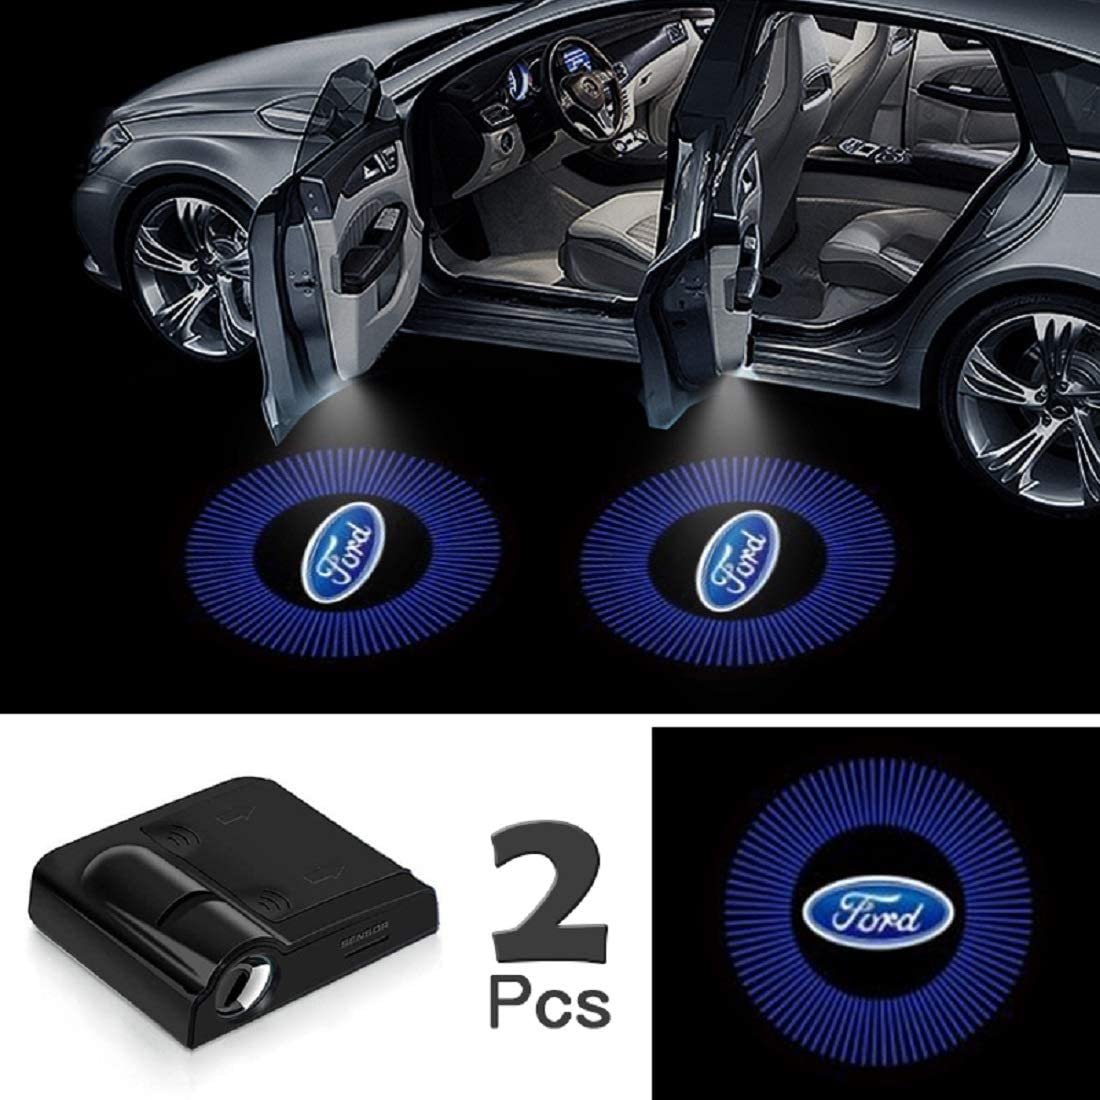 Upgraded Car Door Welcome Logo Projector Lights with 3.M Sticker,forD0DGE JOJOY LUX 2 Pack Car Door Lights Logo Projector Universal Wireless Car Door Led Projector Lights